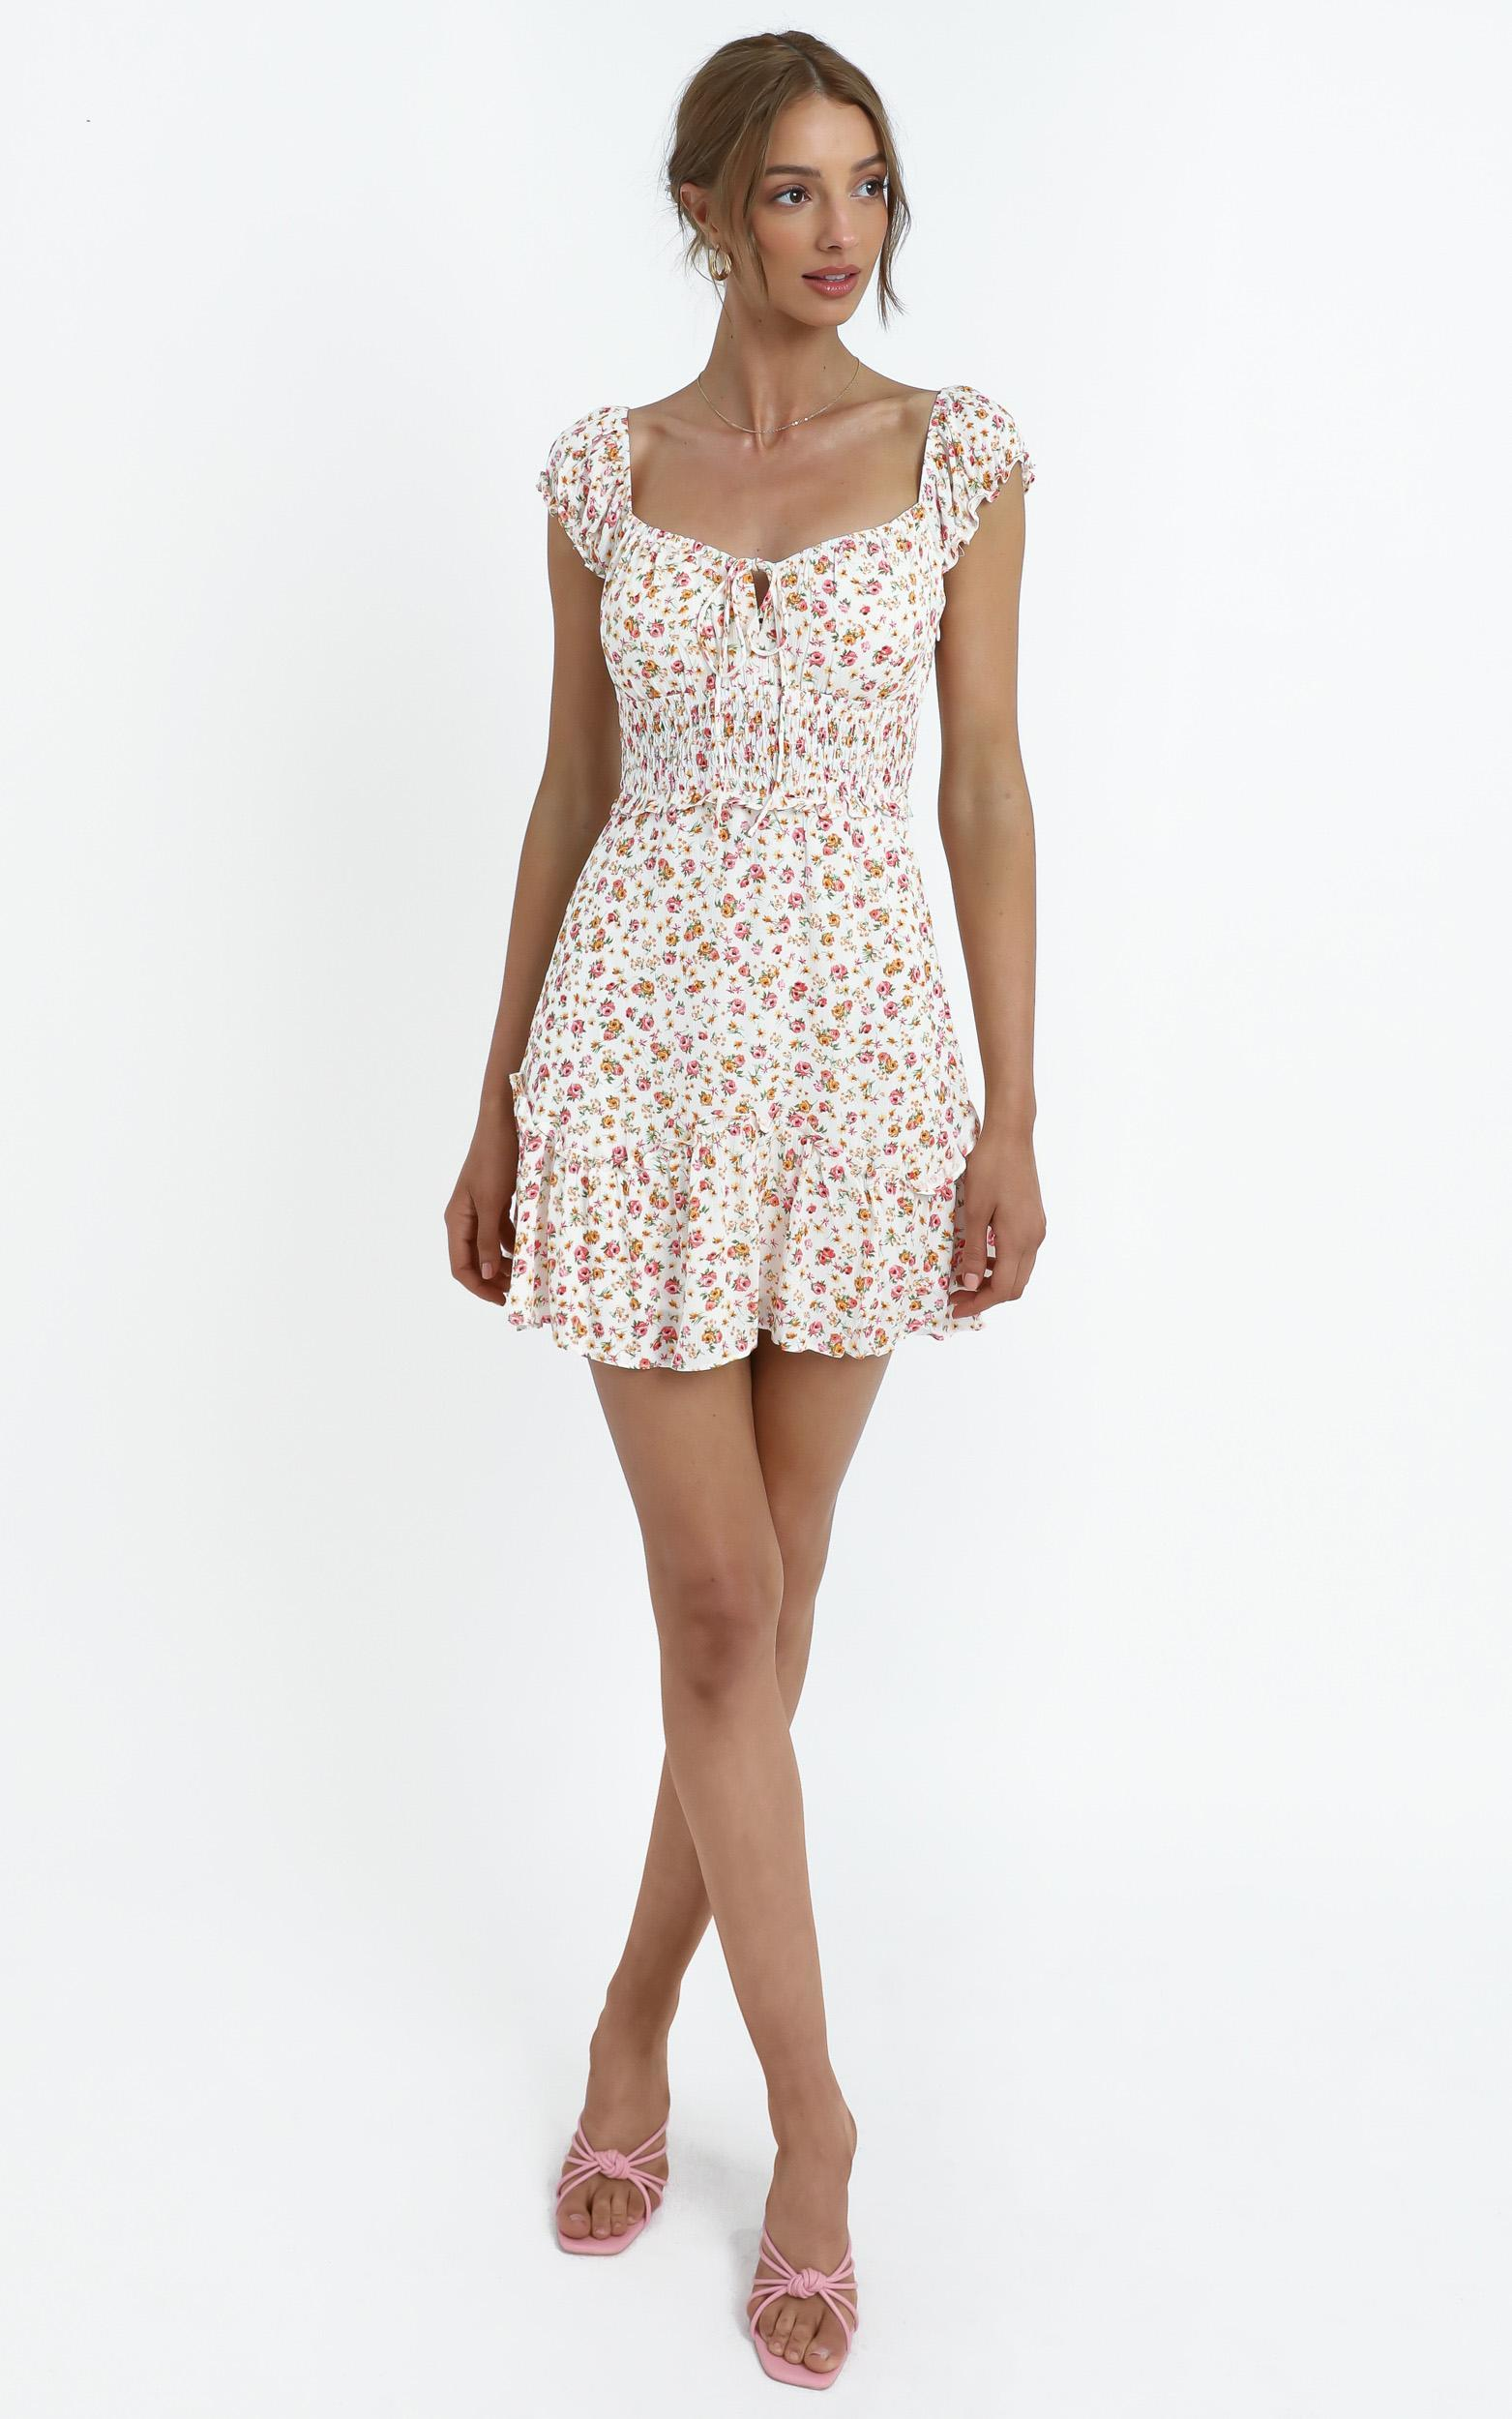 Althia Dress in White Floral - 12 (L), White, hi-res image number null